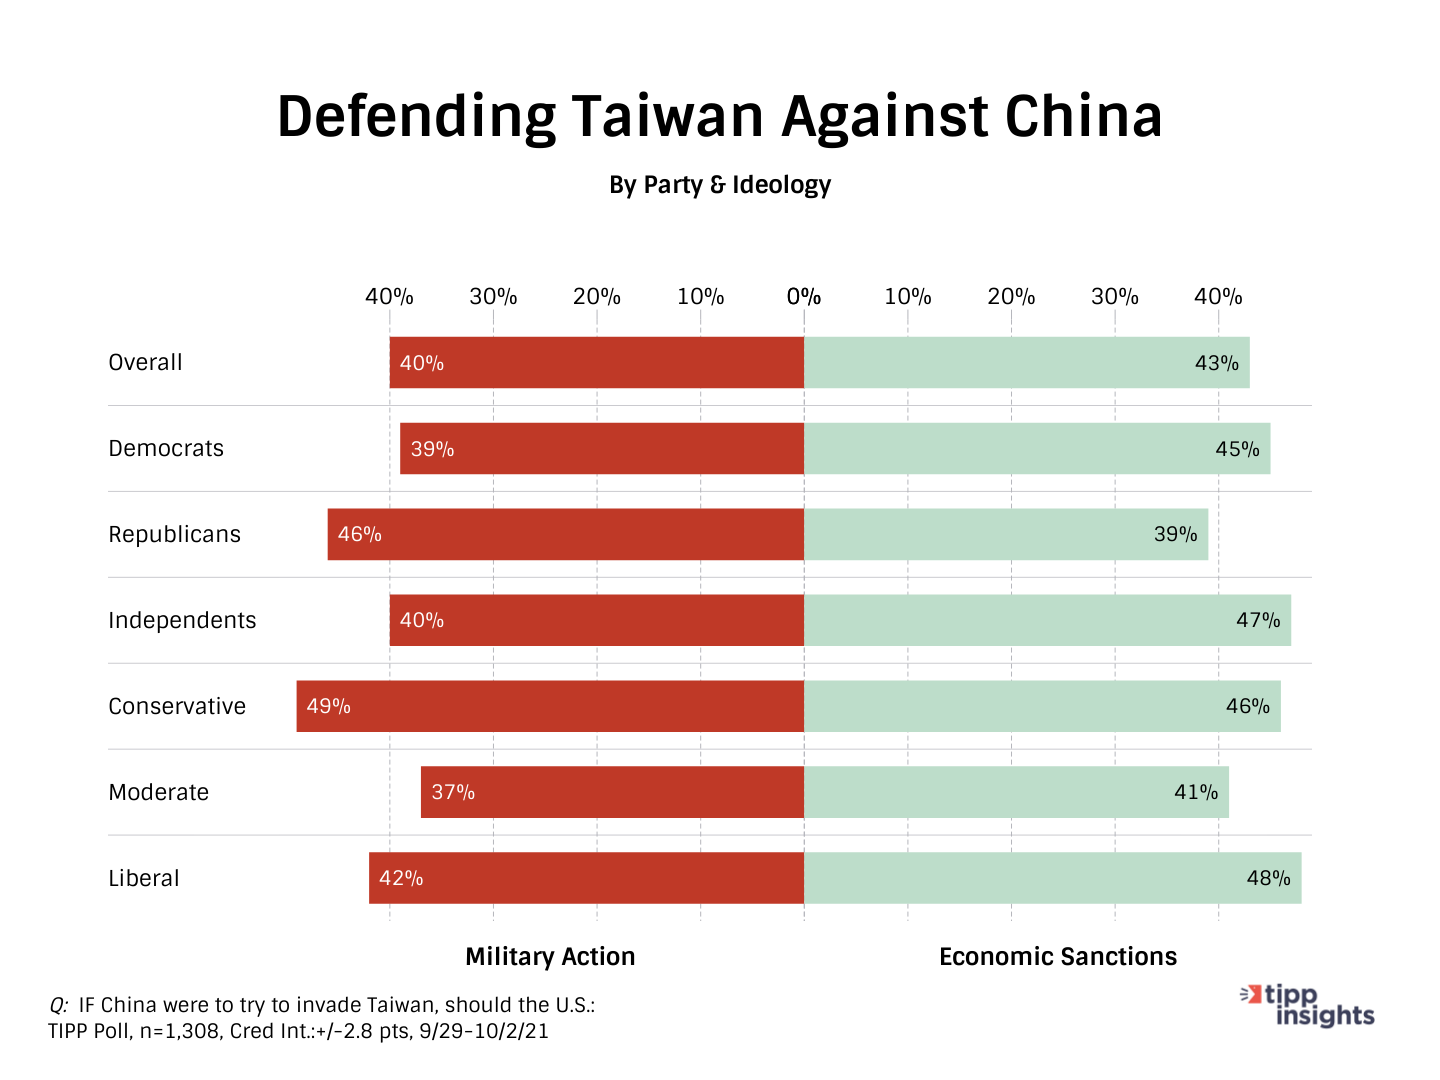 TIPP Poll Results: Asking Americans what they think is the best way to defend Taiwan against China